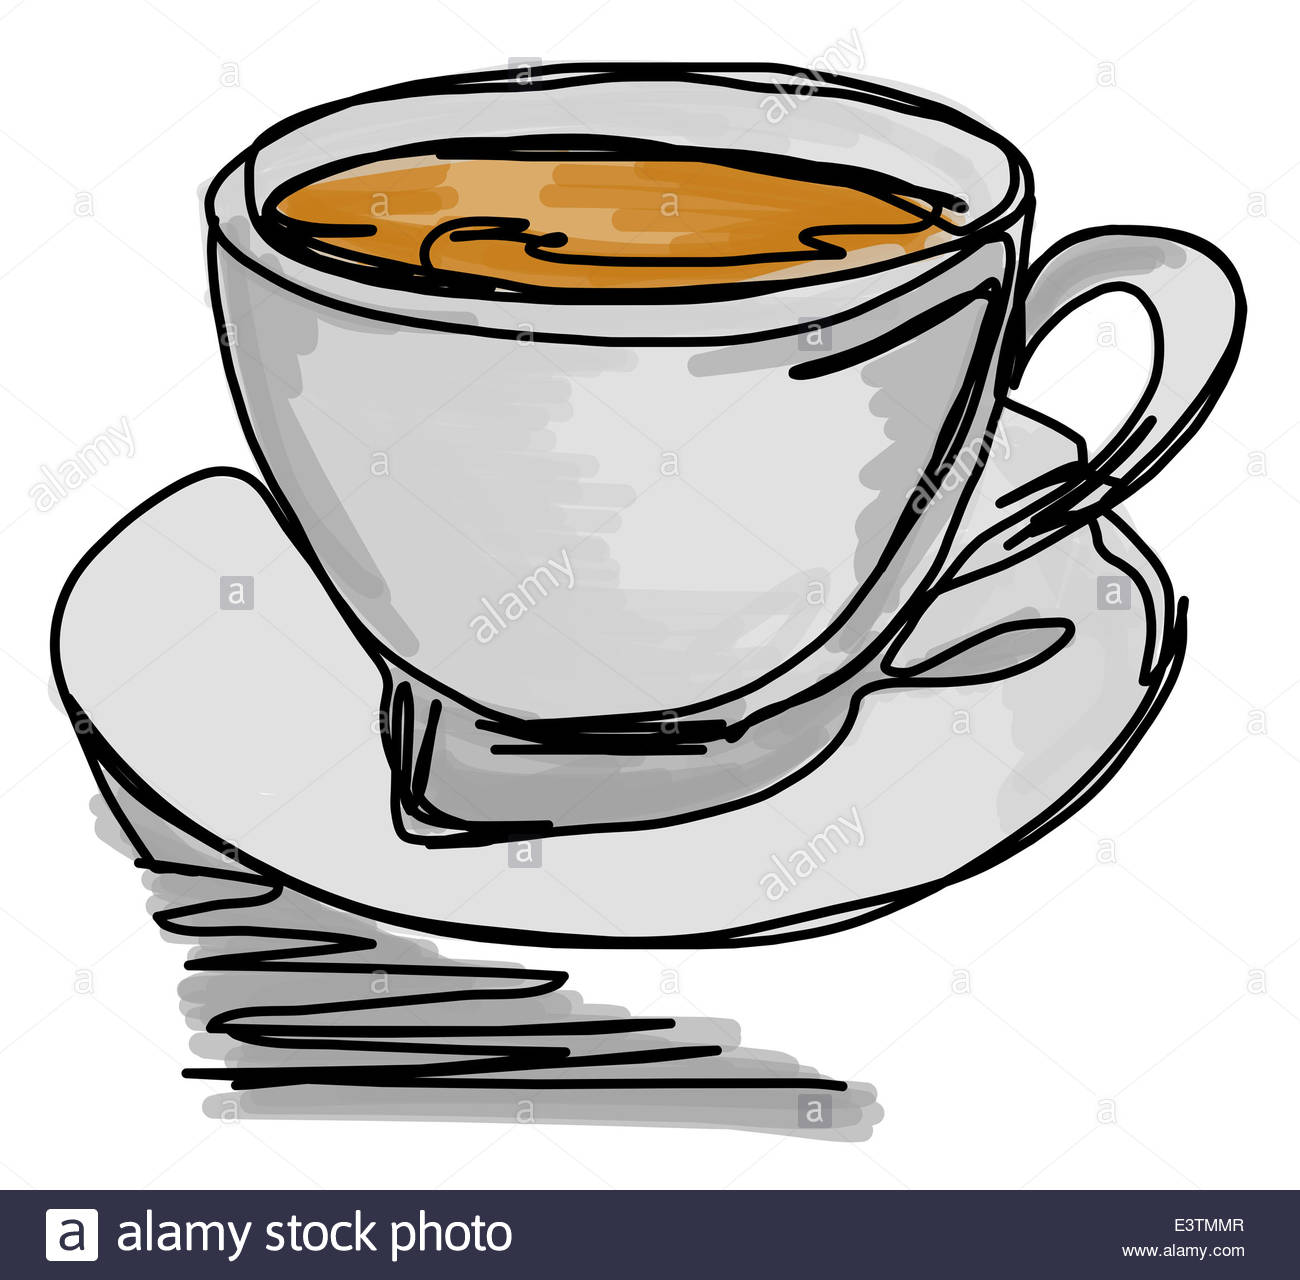 1300x1280 Continuous Line Drawing Of A Cup Of Coffee Stock Photo, Royalty